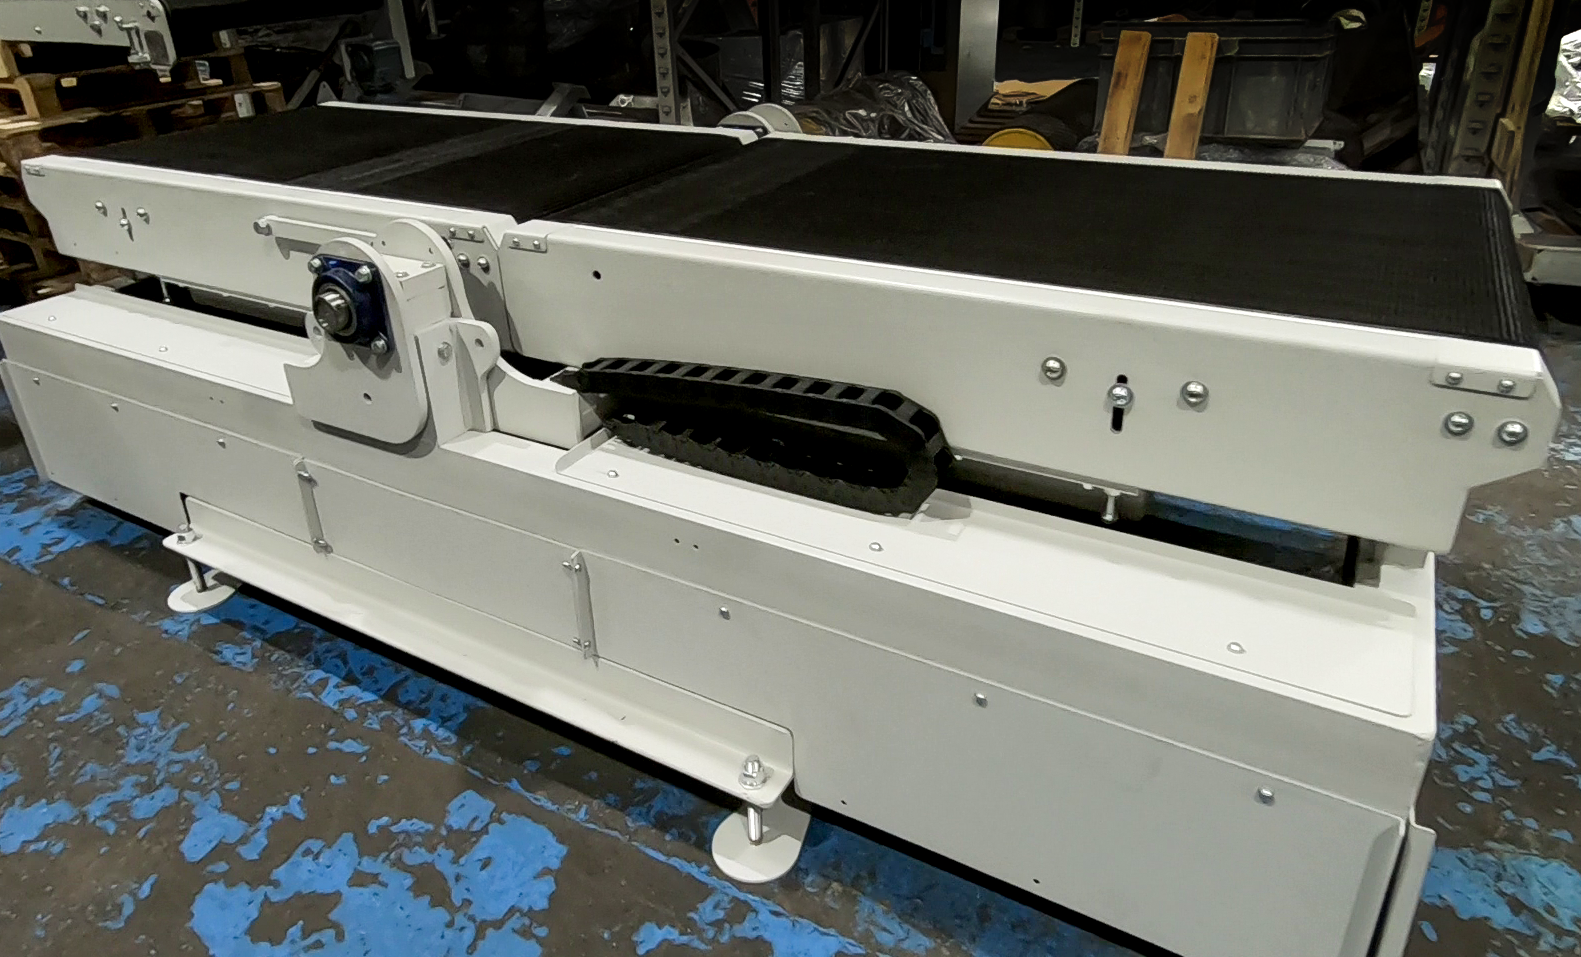 Bespoke conveyors for a systems and automation company